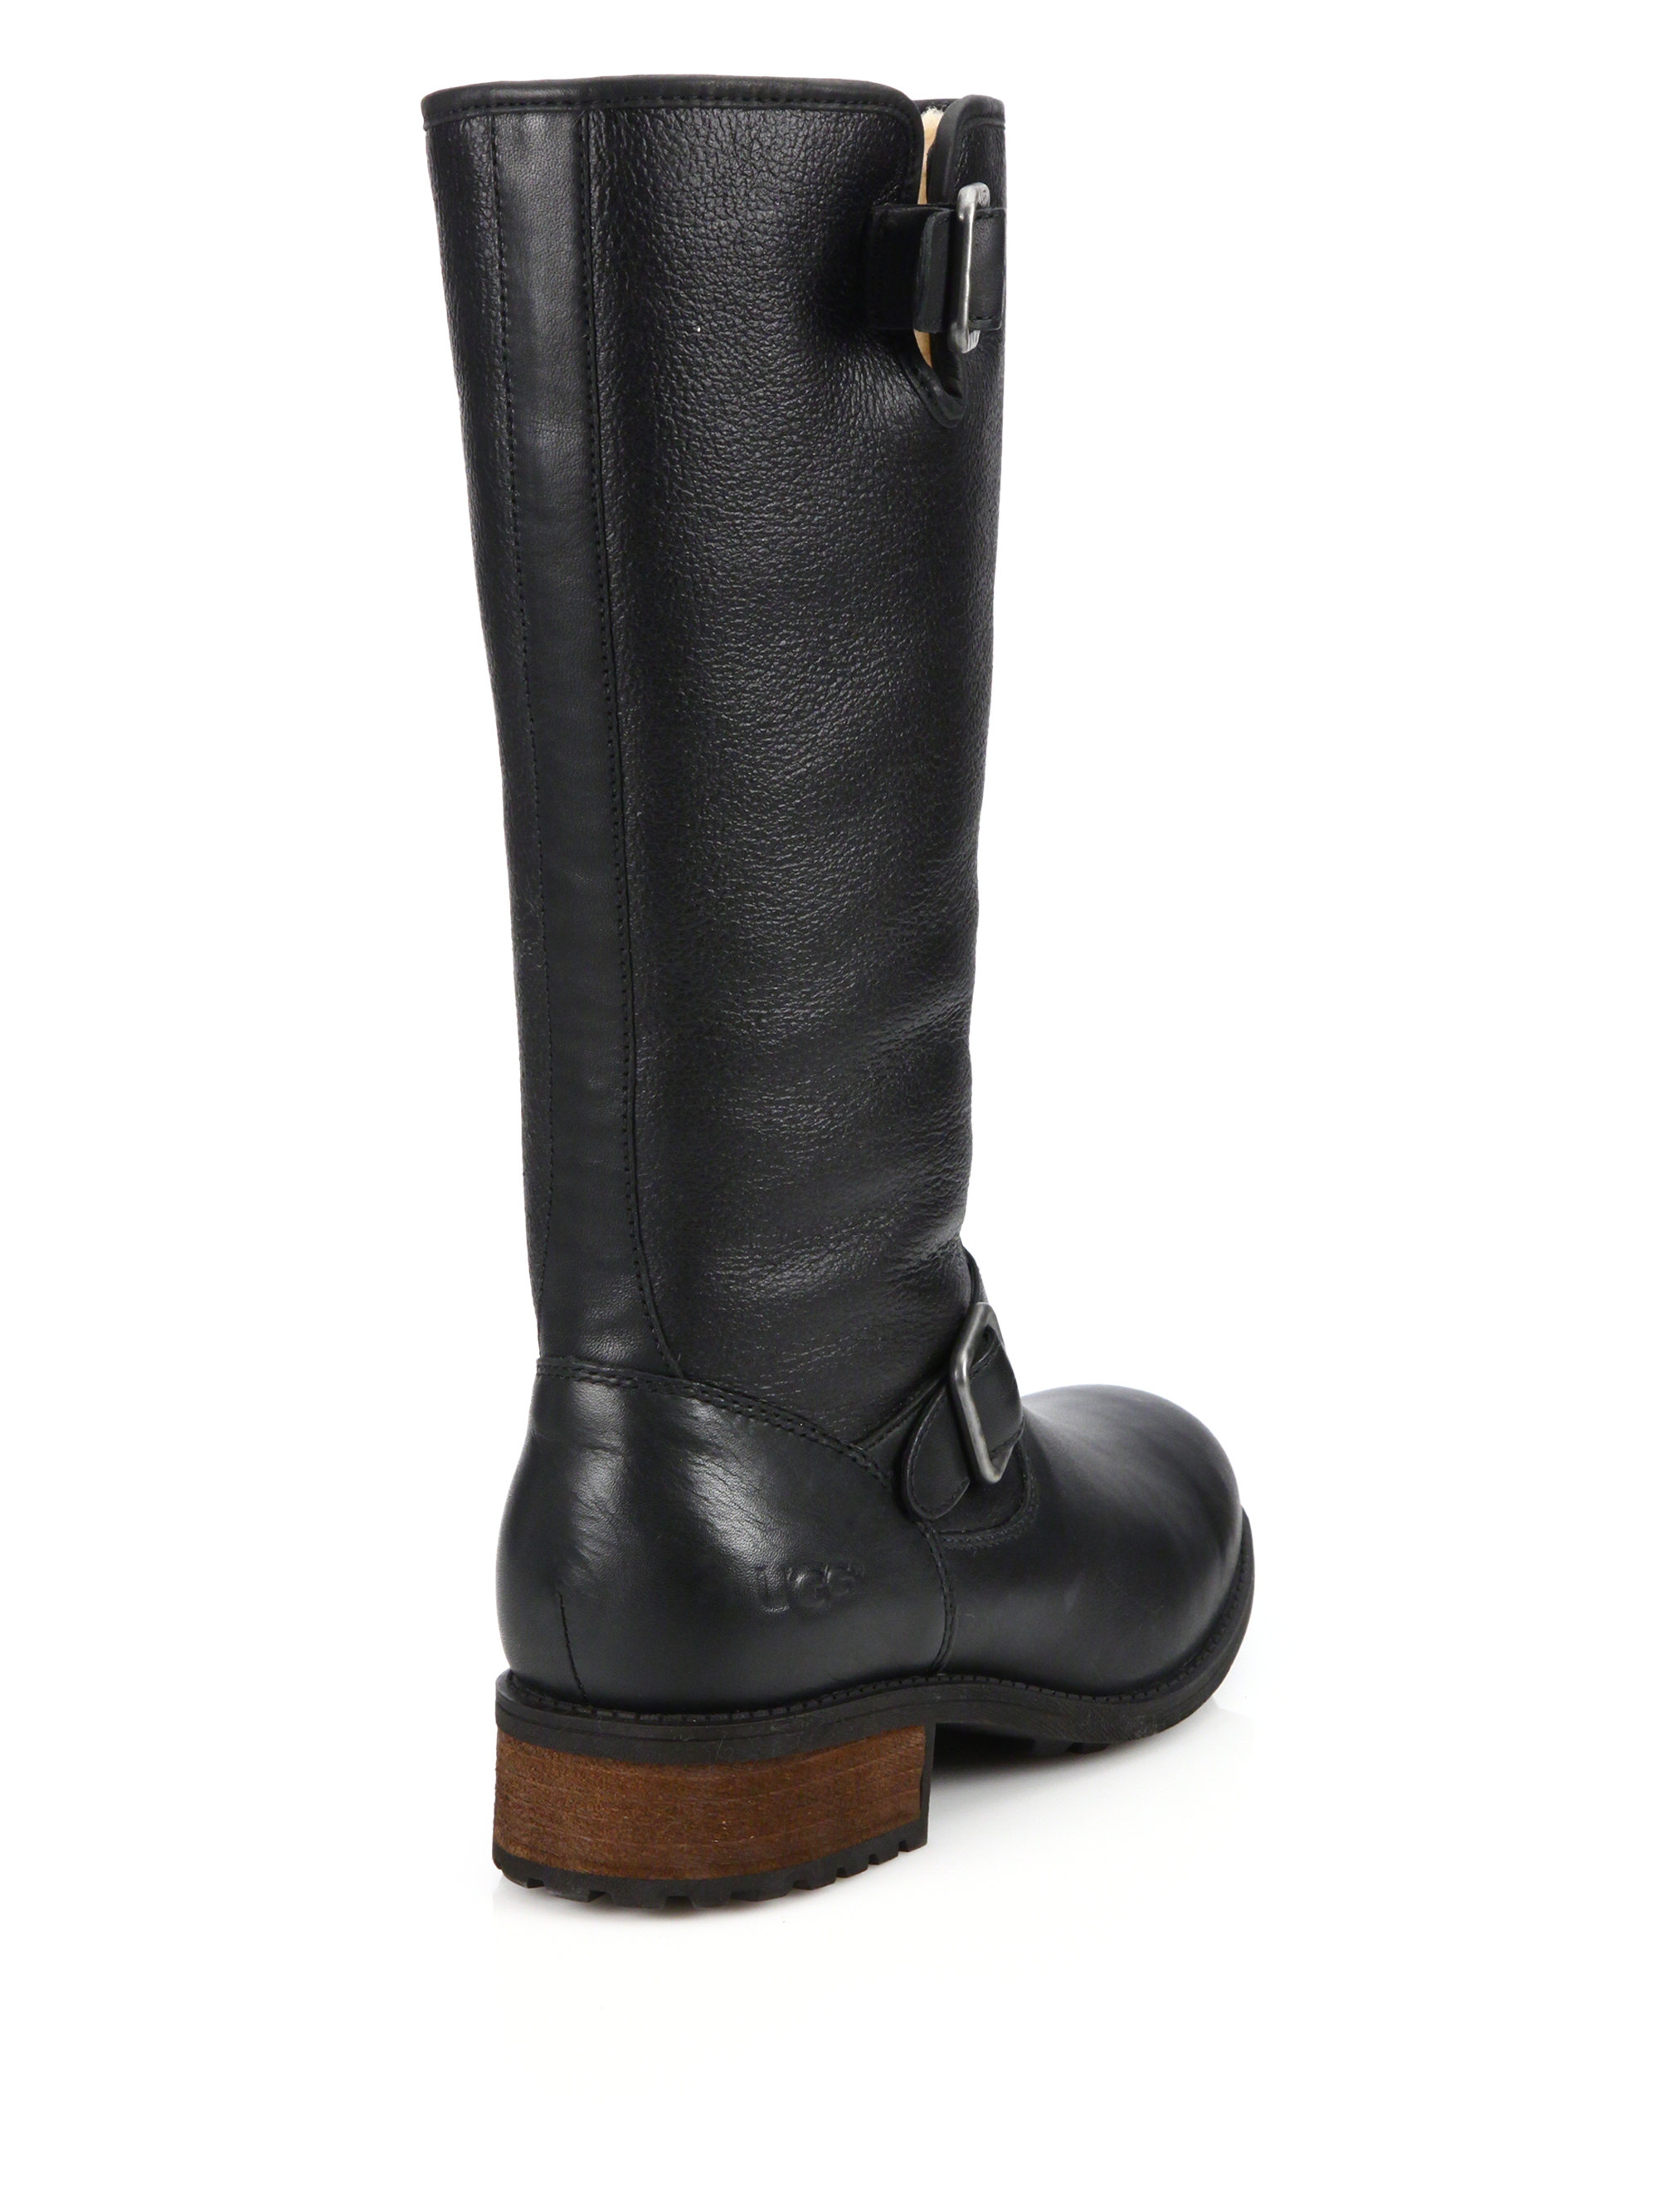 95b8a0301d6 usa ugg long leather boots ef5a0 8fdf3